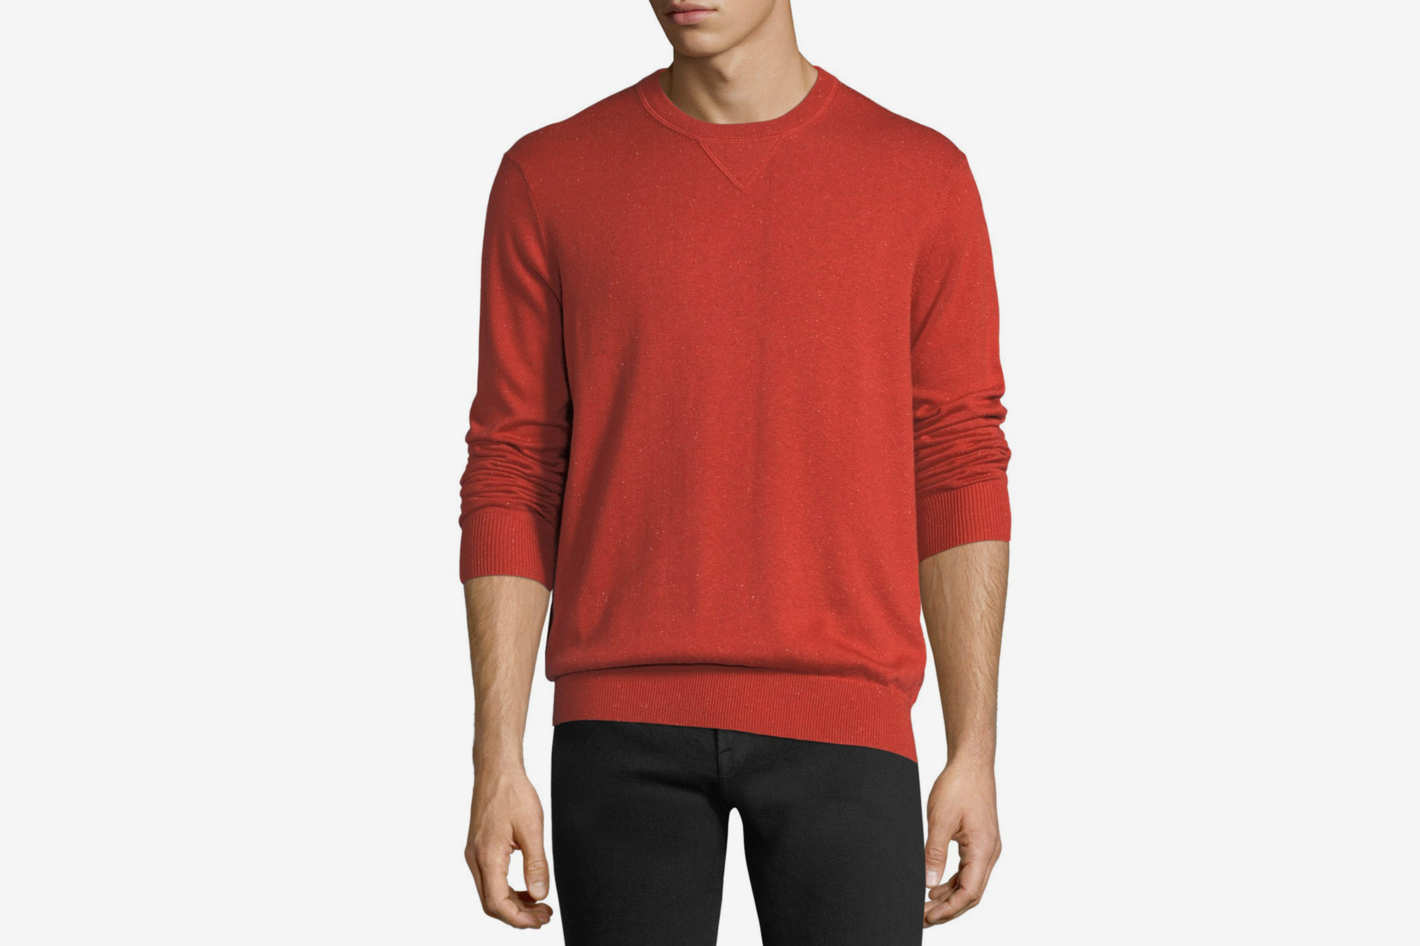 Neiman Marcus Donegal Crewneck Sweatshirt with Elbow Patches